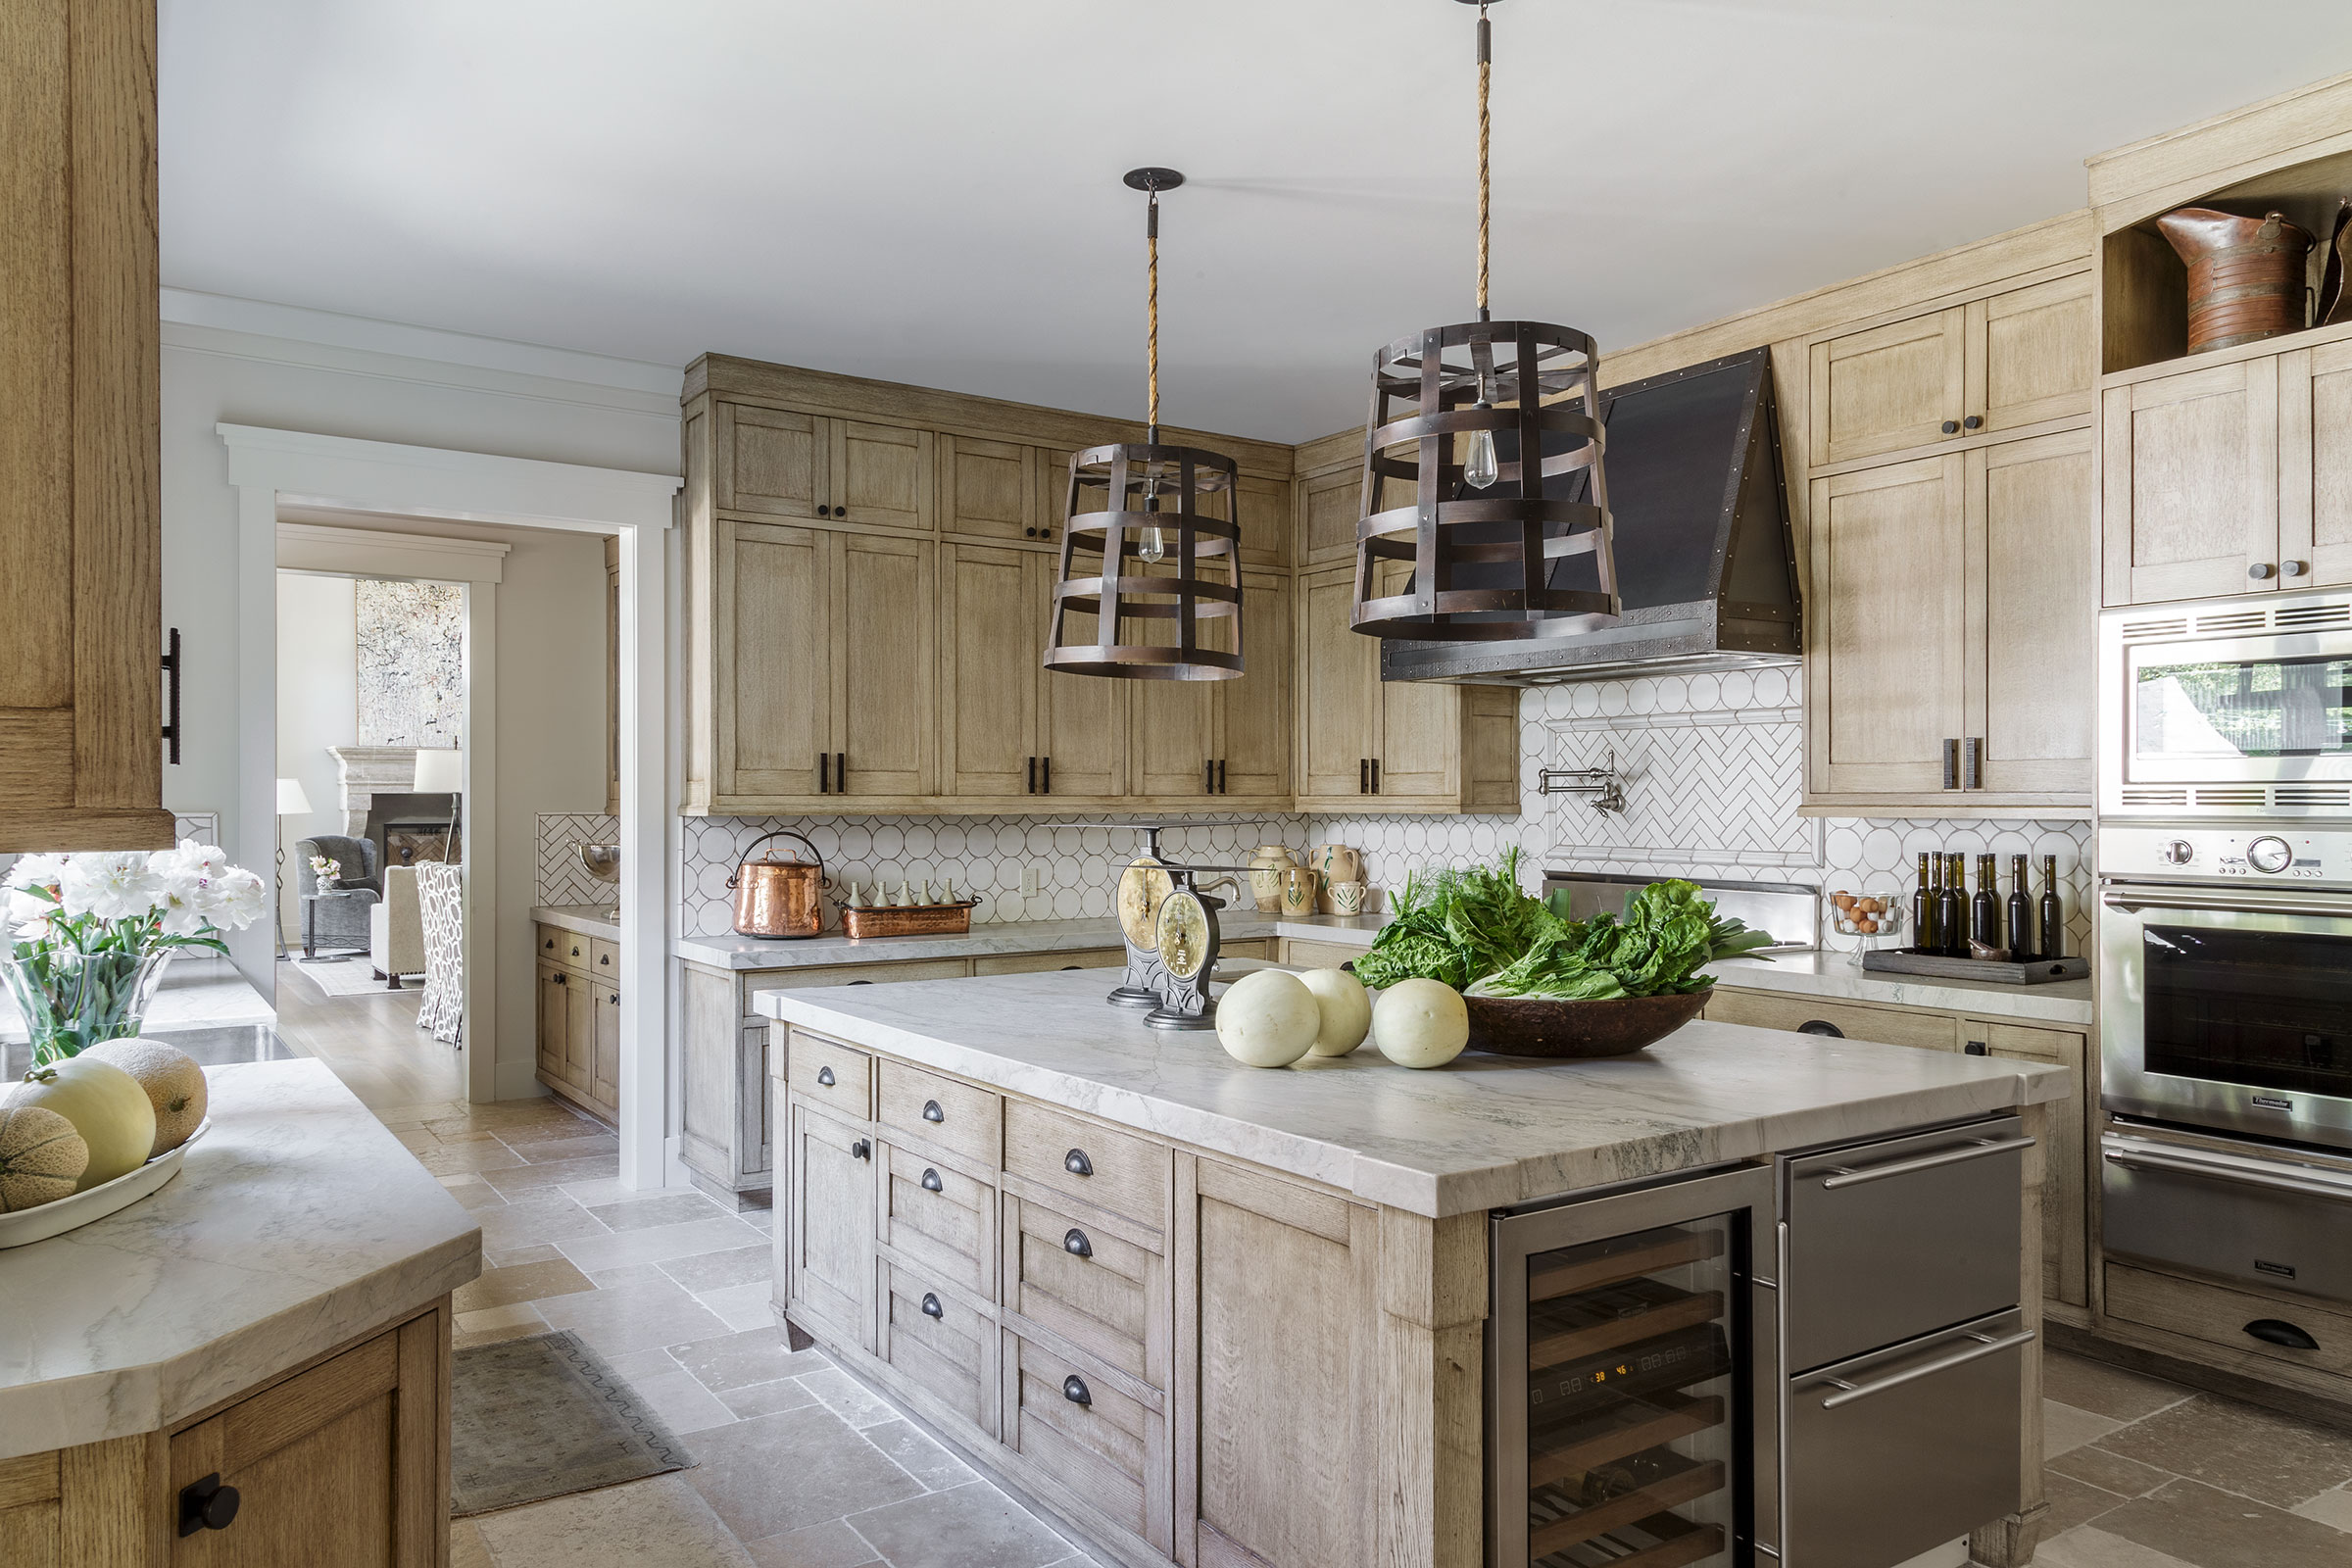 Diablo Shingle Style Kitchen with View to Living Room Buestad Construction